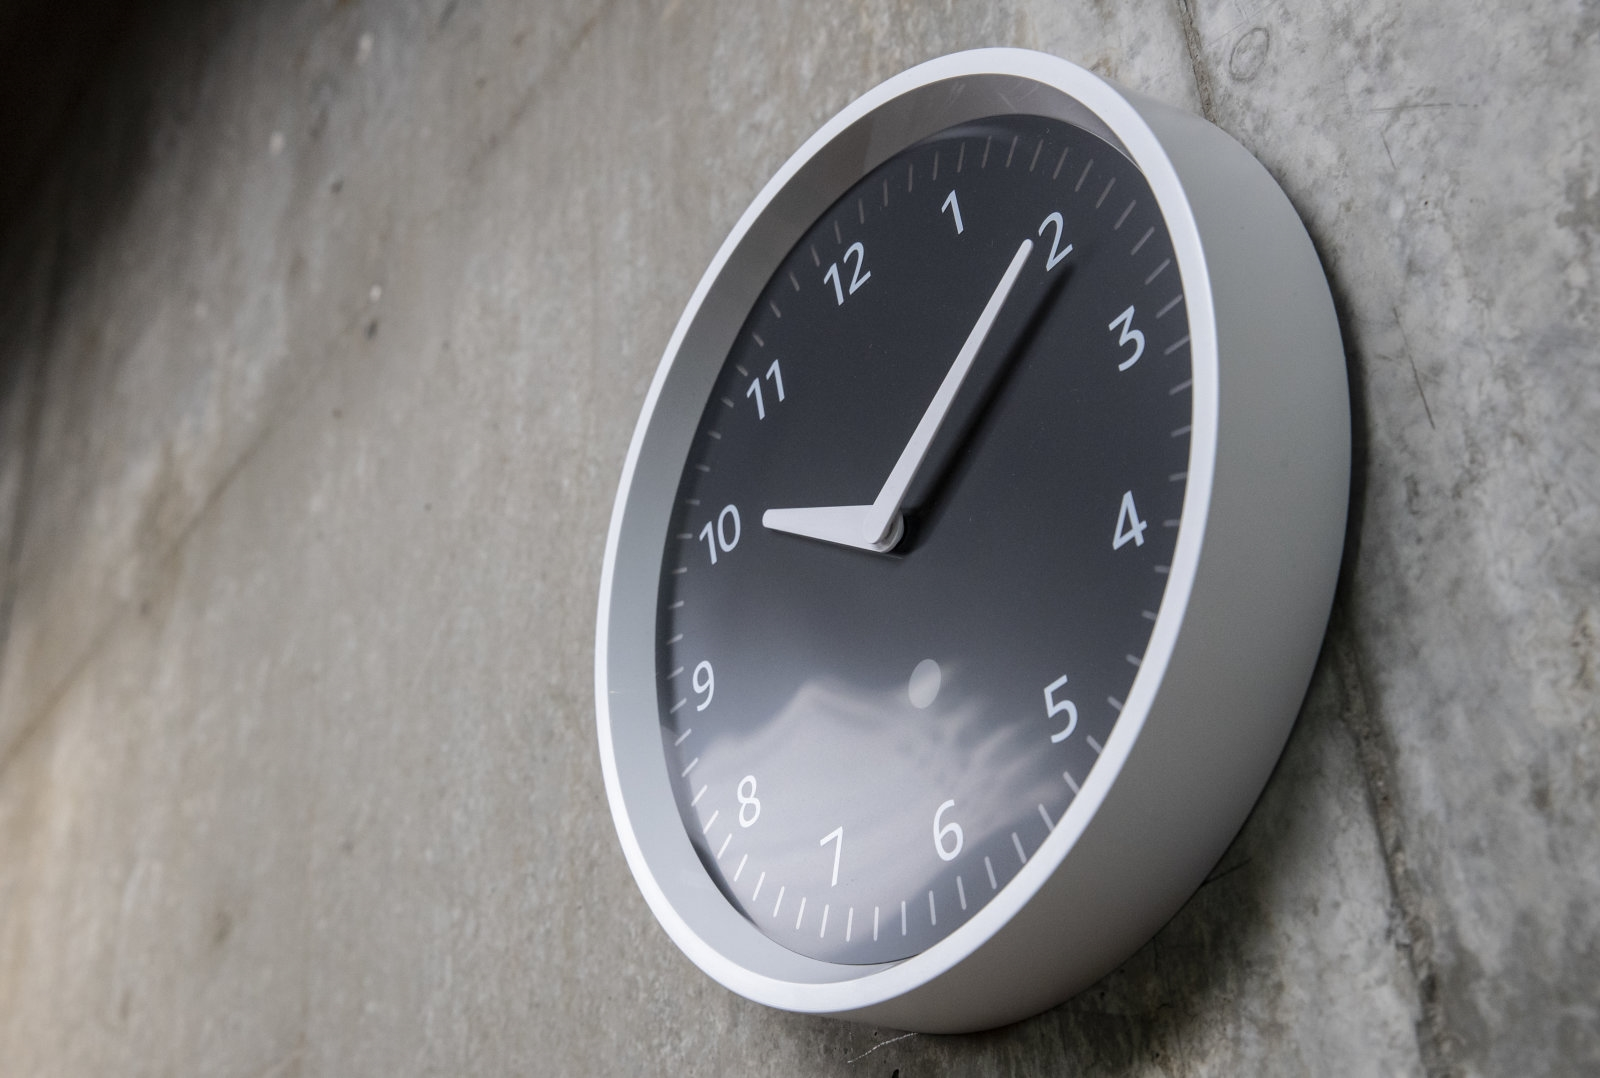 Amazon stops selling Echo Wall Clock over connectivity issues | DeviceDaily.com